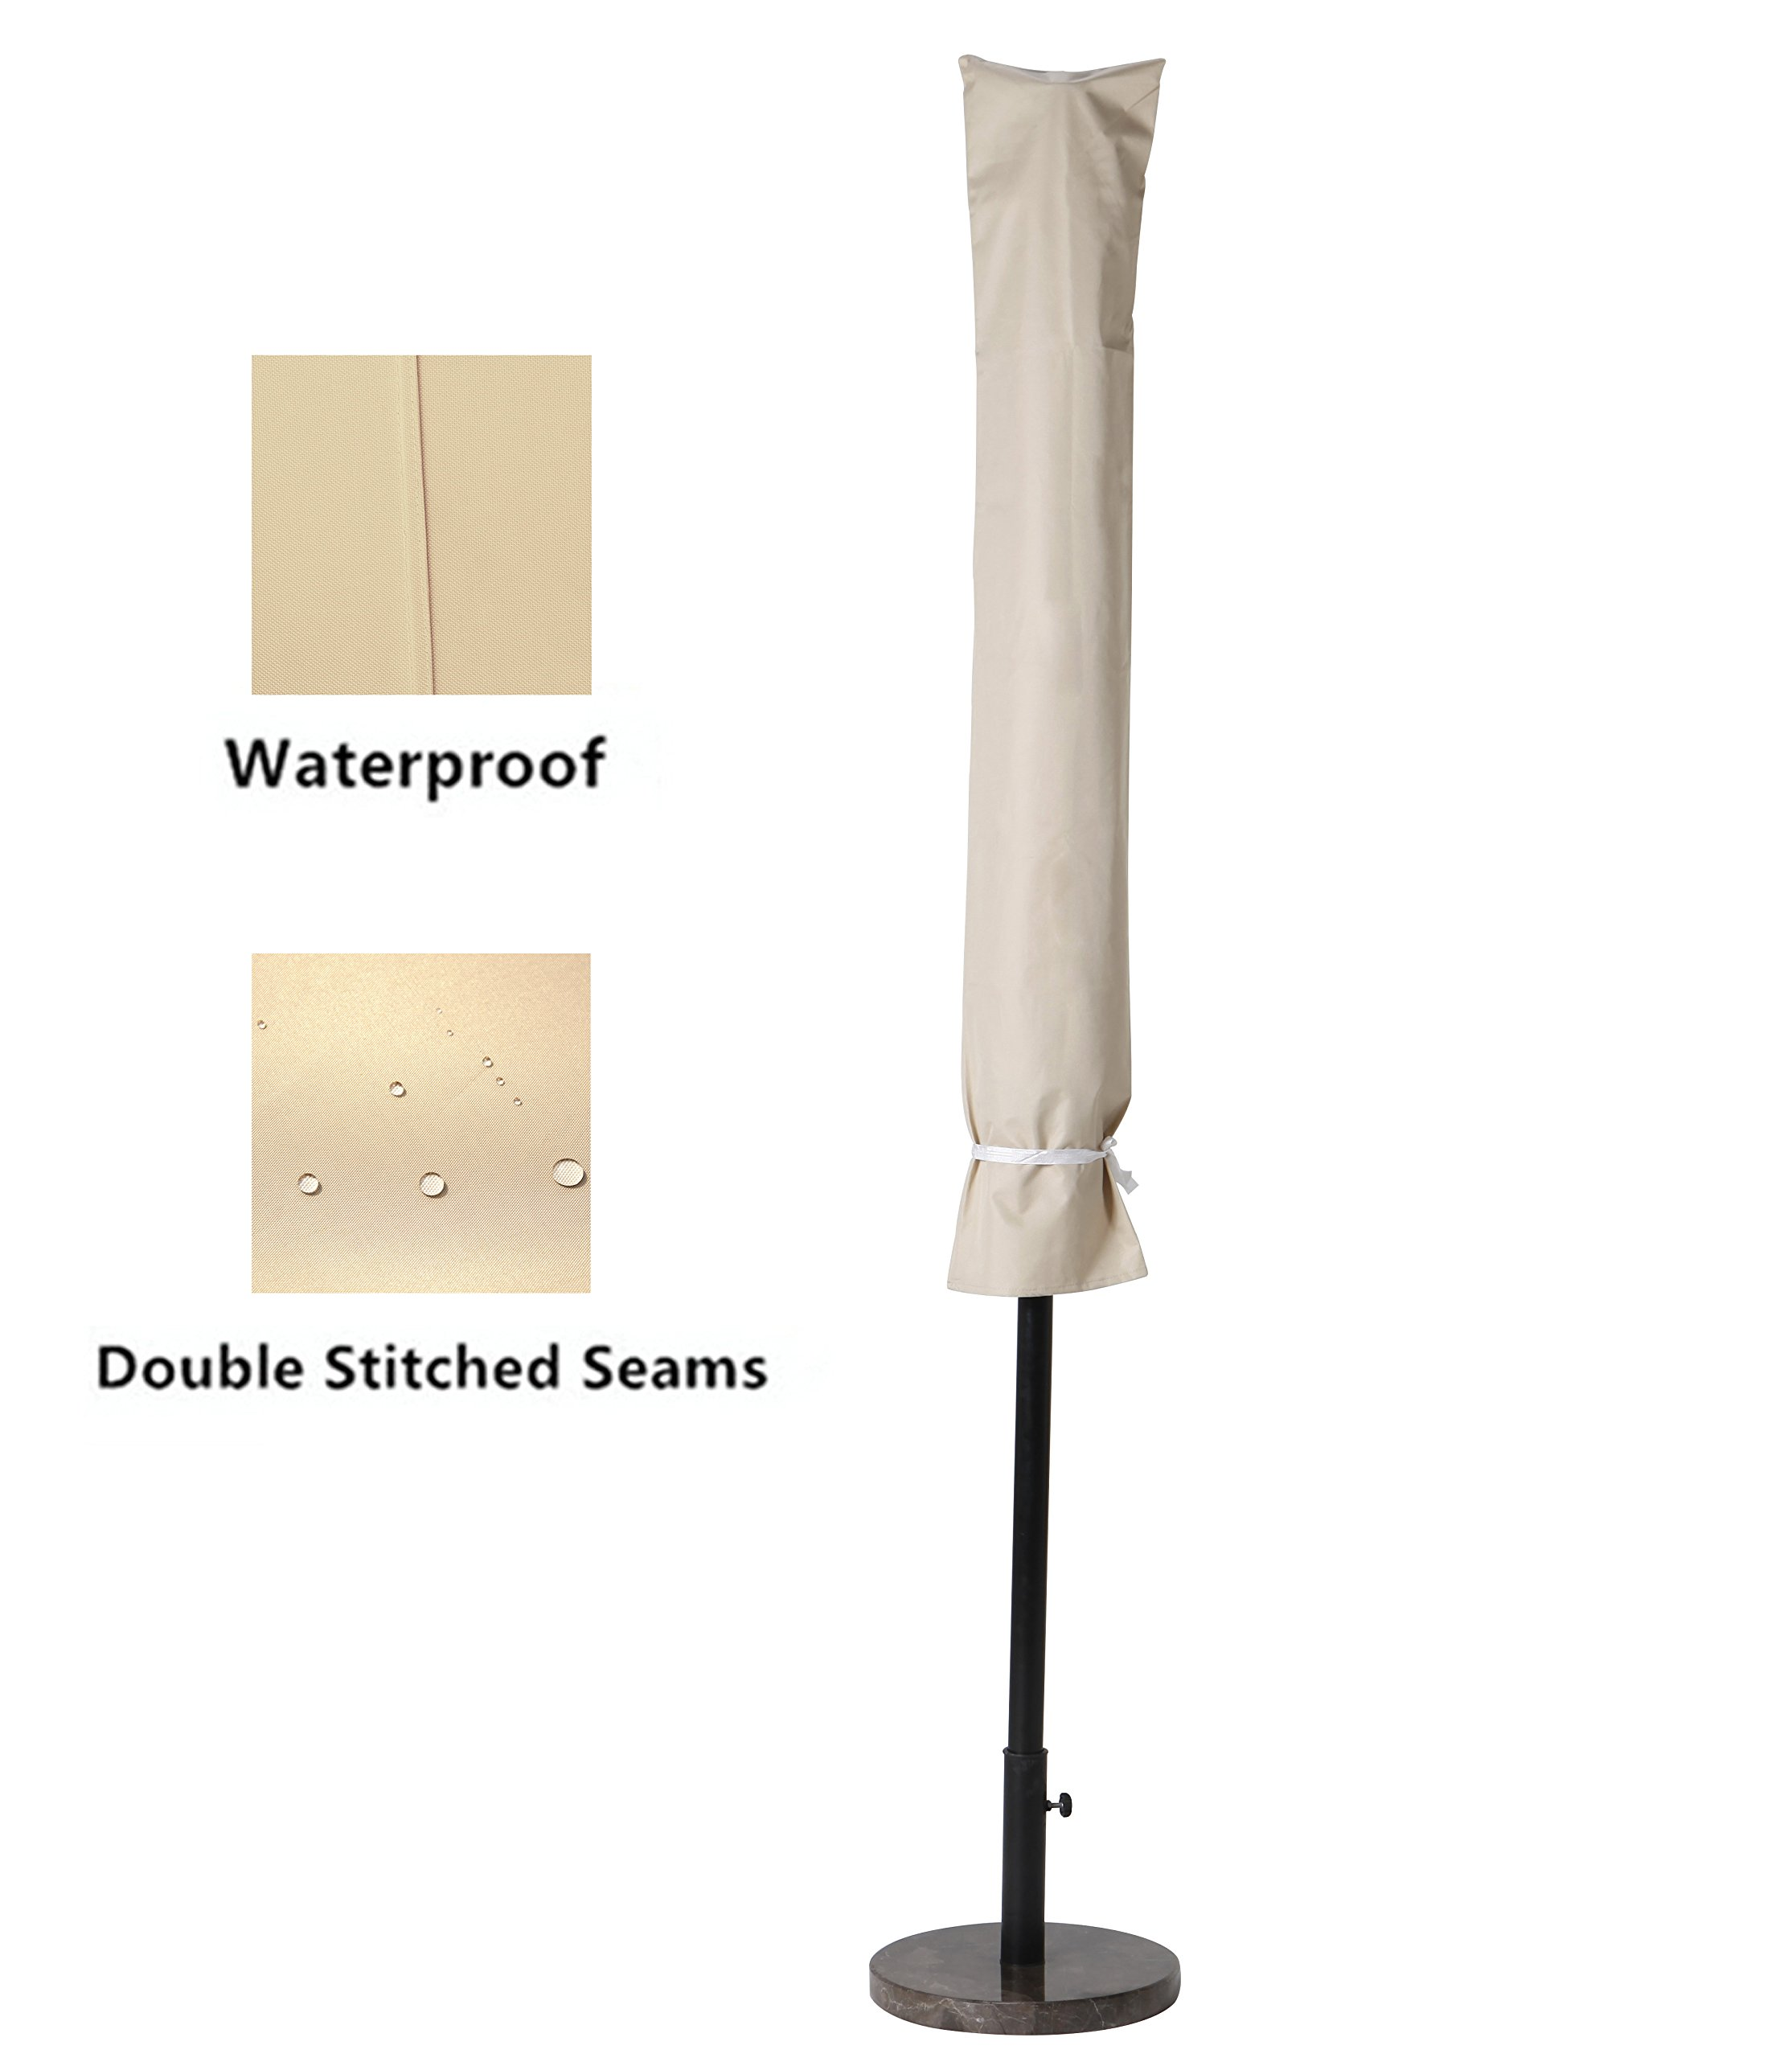 Grand patio Weather-Resistant Patio Umbrella Cover for 9 to 10.5 FT Patio Umbrellas, Waterproof and Durable Market Umbrella Cover, Beige